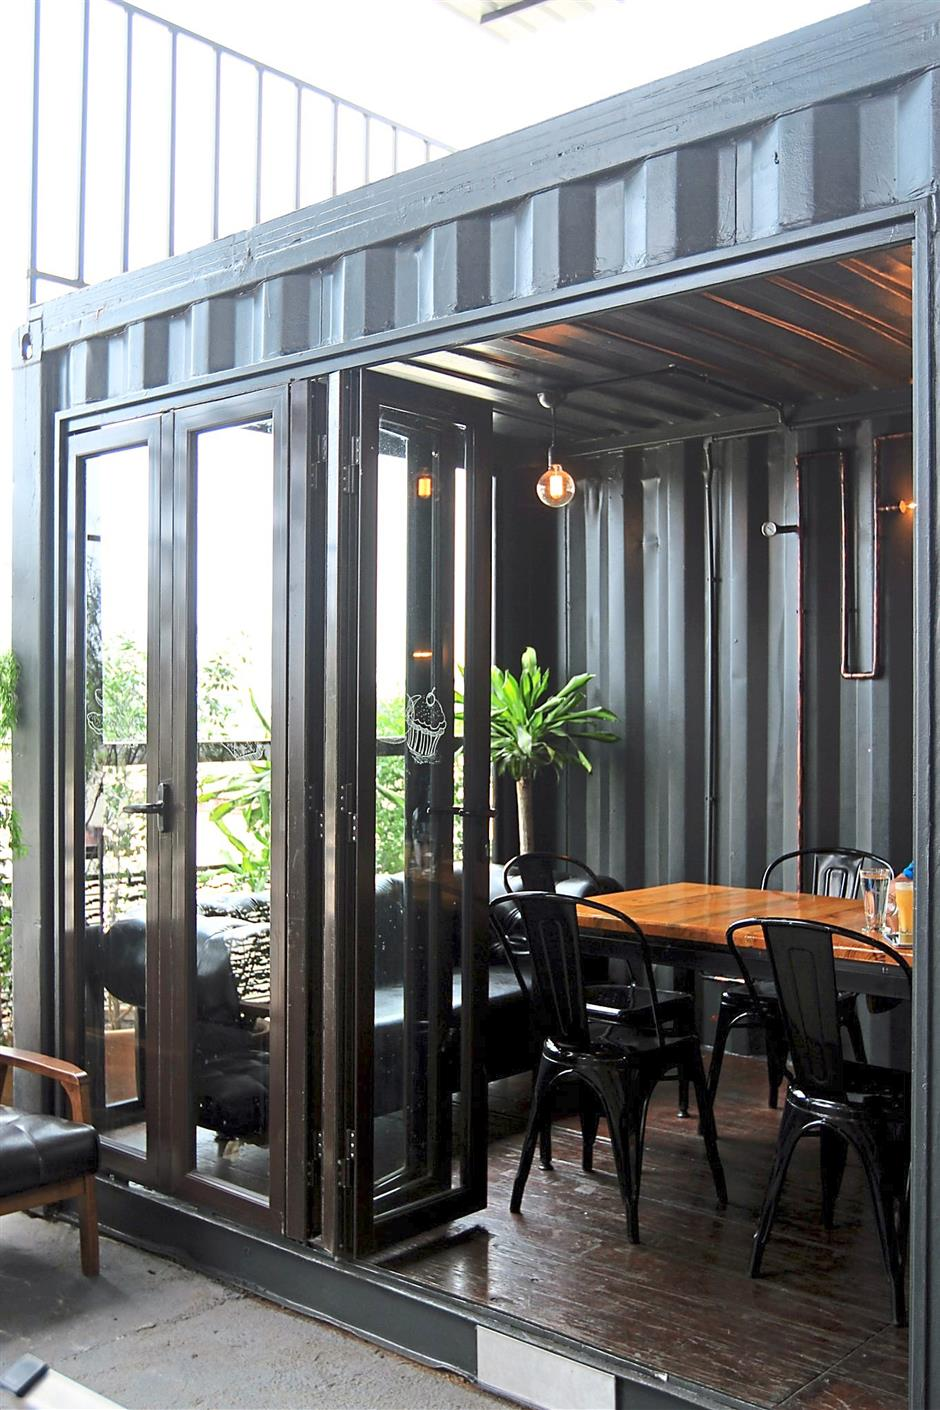 One of the containers is converted into a small meeting room, complete with a folding glass door and some furniture made in-house.